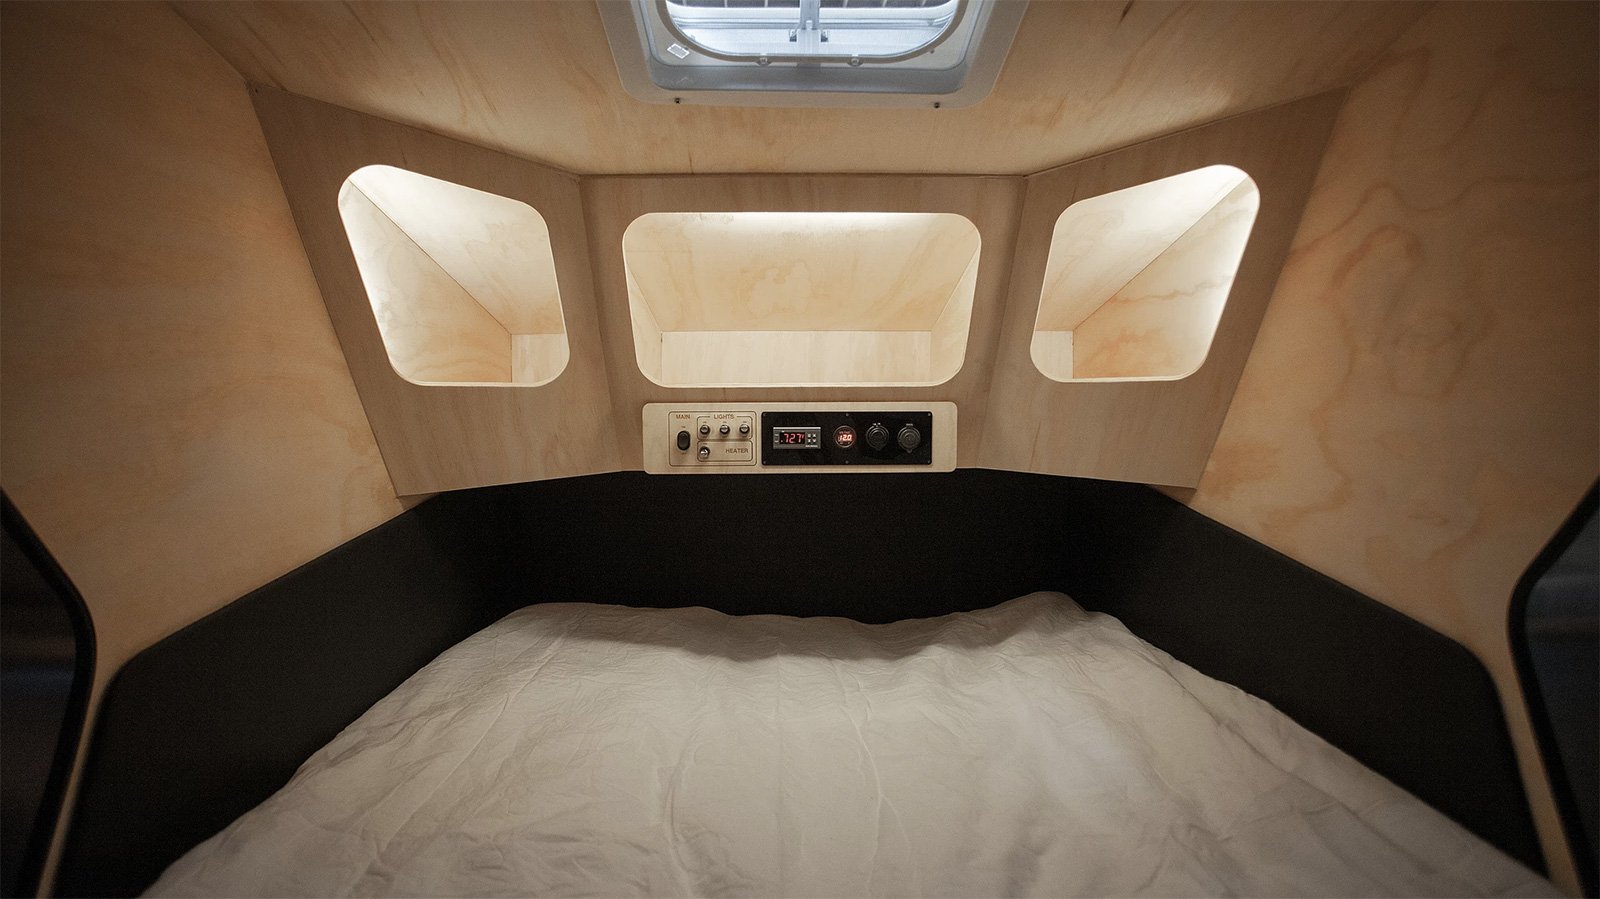 The Polydrop camper has pared back interiors with built-in cubby holes for storage and a panel for controlling LED lighting